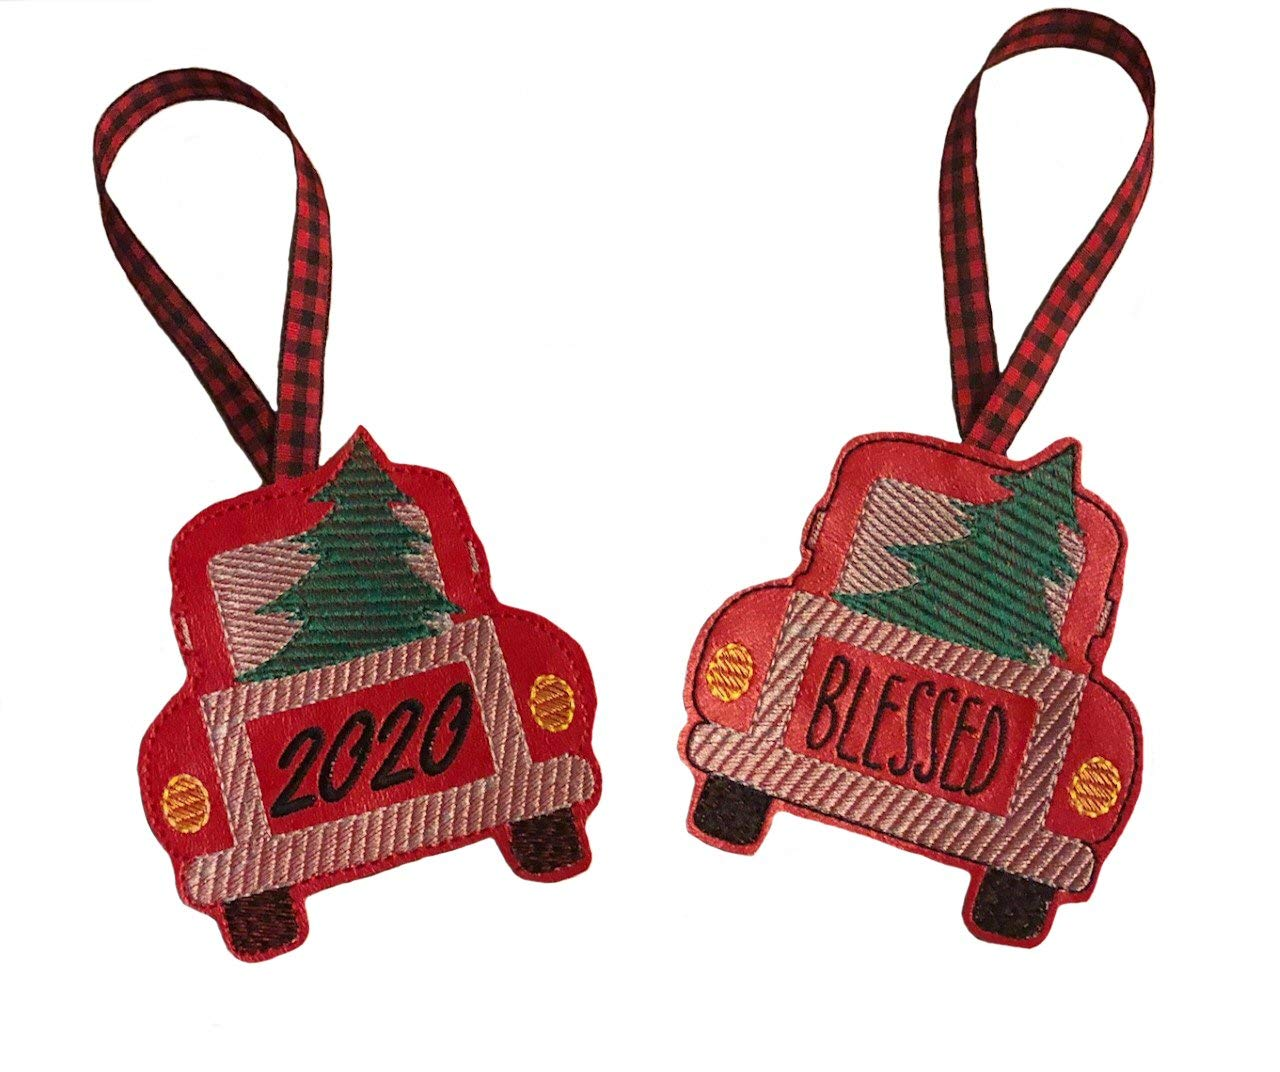 NEW Christmas Tree Truck Ornament 2020 BLESSED or Columbus Mall